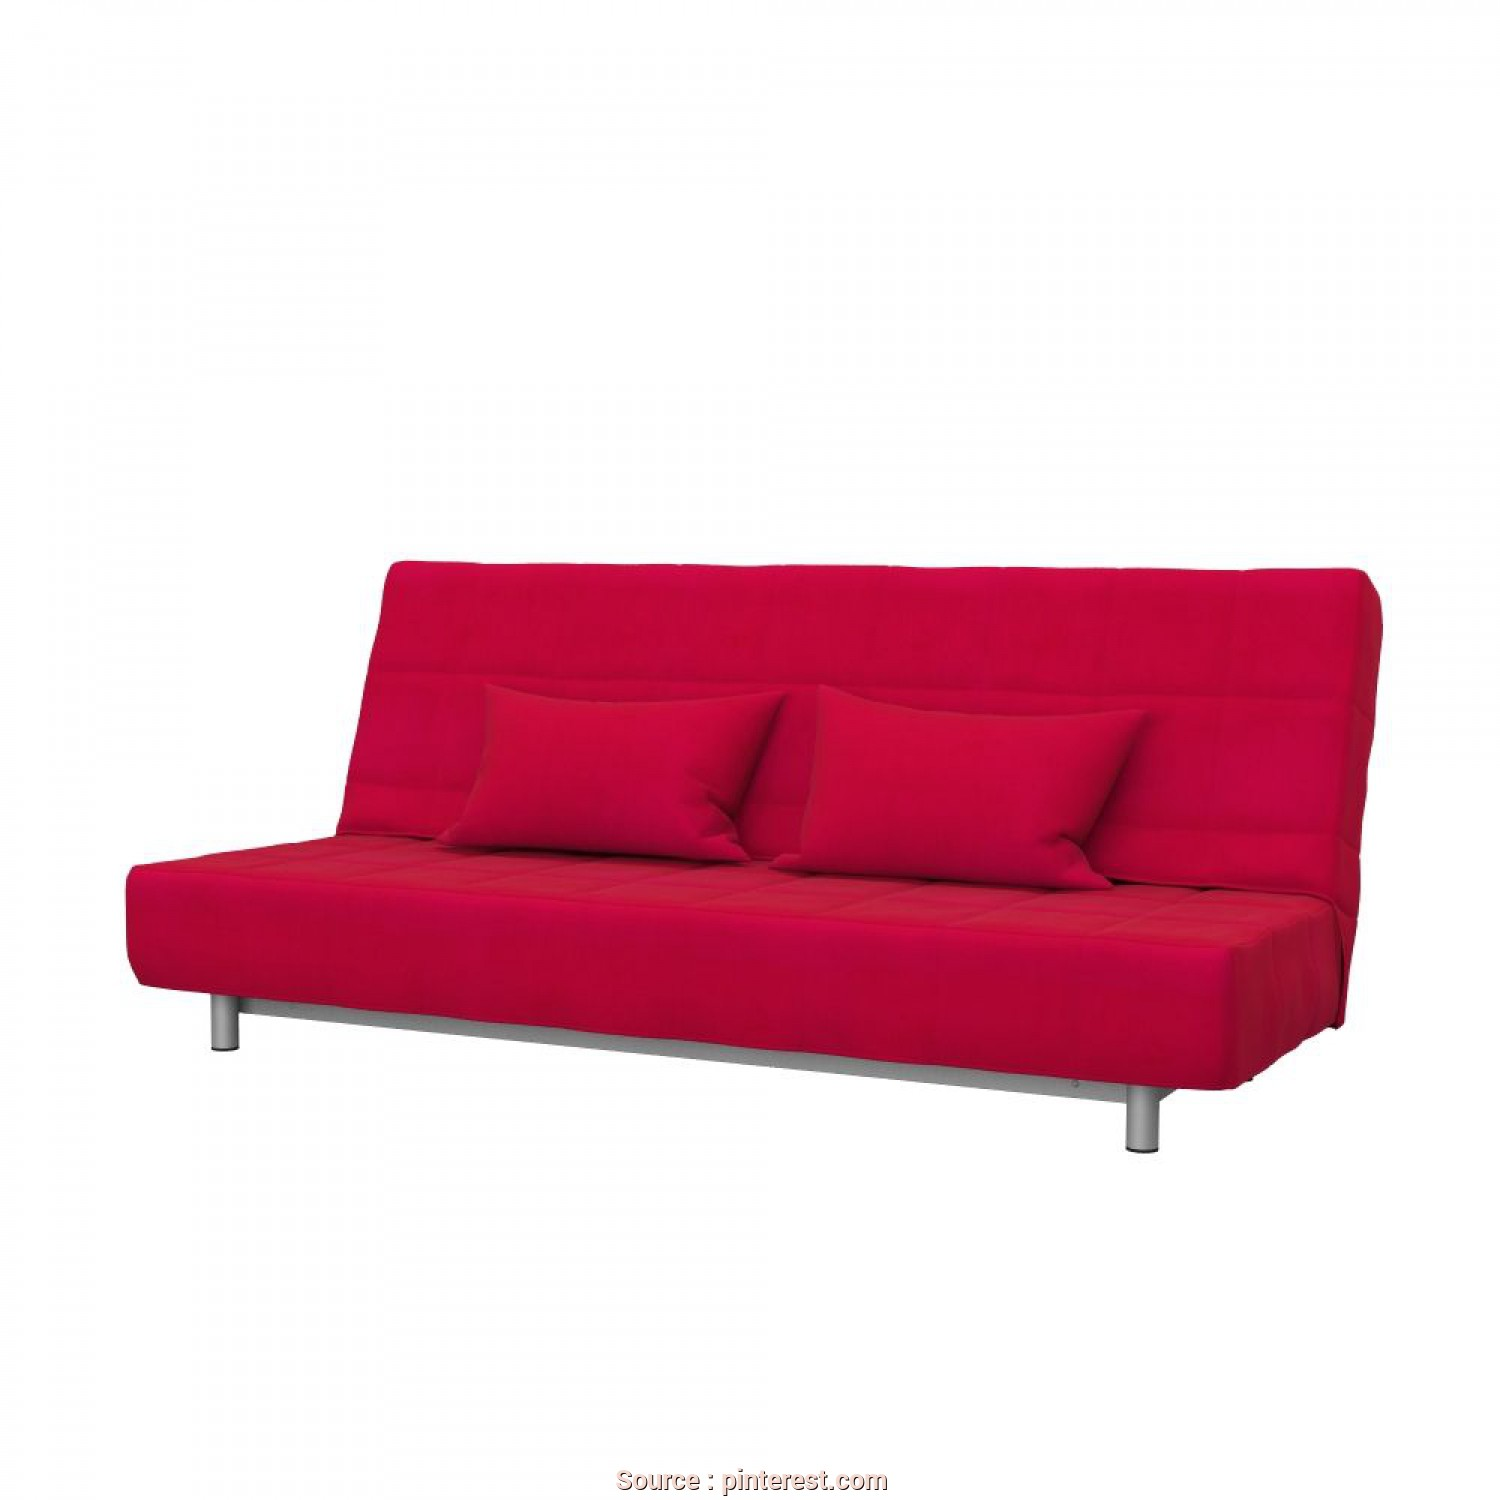 Ikea Beddinge 3 Seater Sofa Bed, Esclusivo IKEA BEDDINGE Three-Seat Sofa-Bed Cover, Soferia,, Furniture